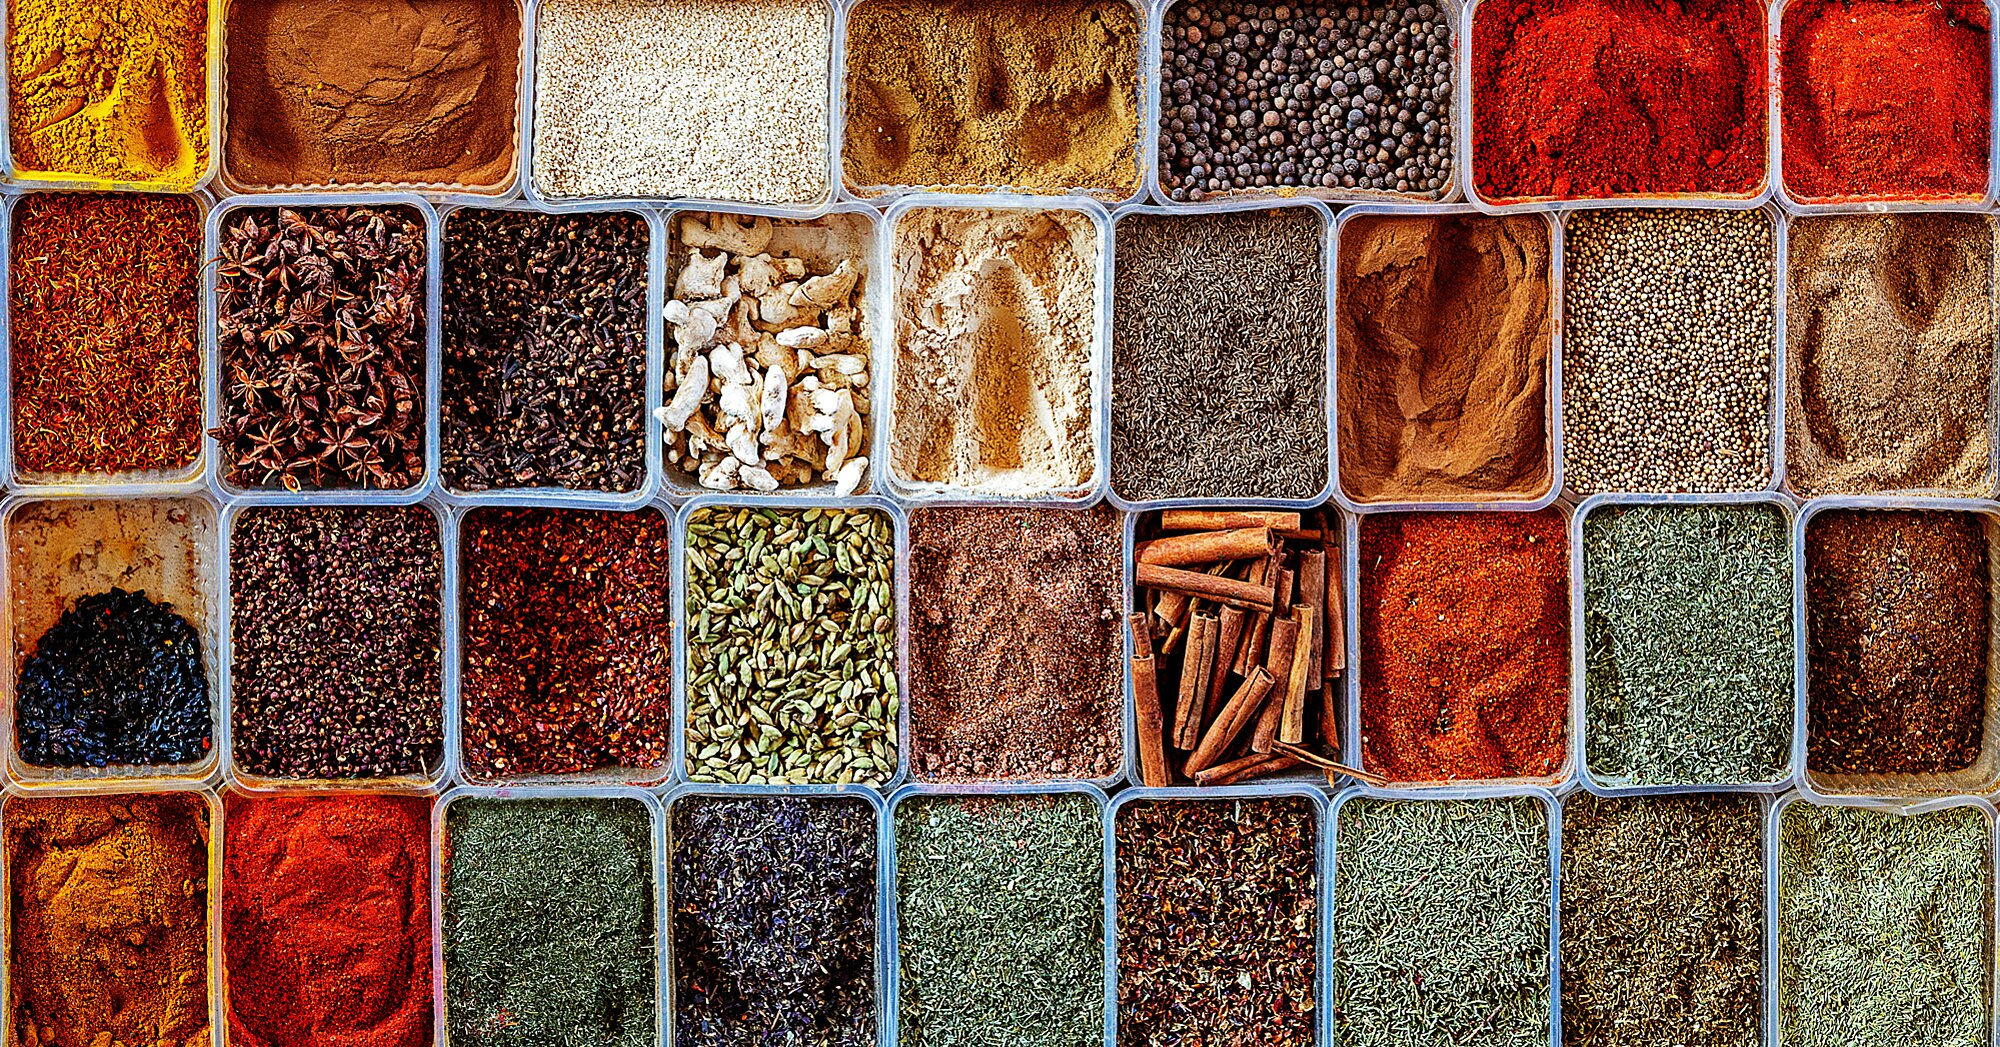 These Are the Essential Spices Every Kitchen Should Have